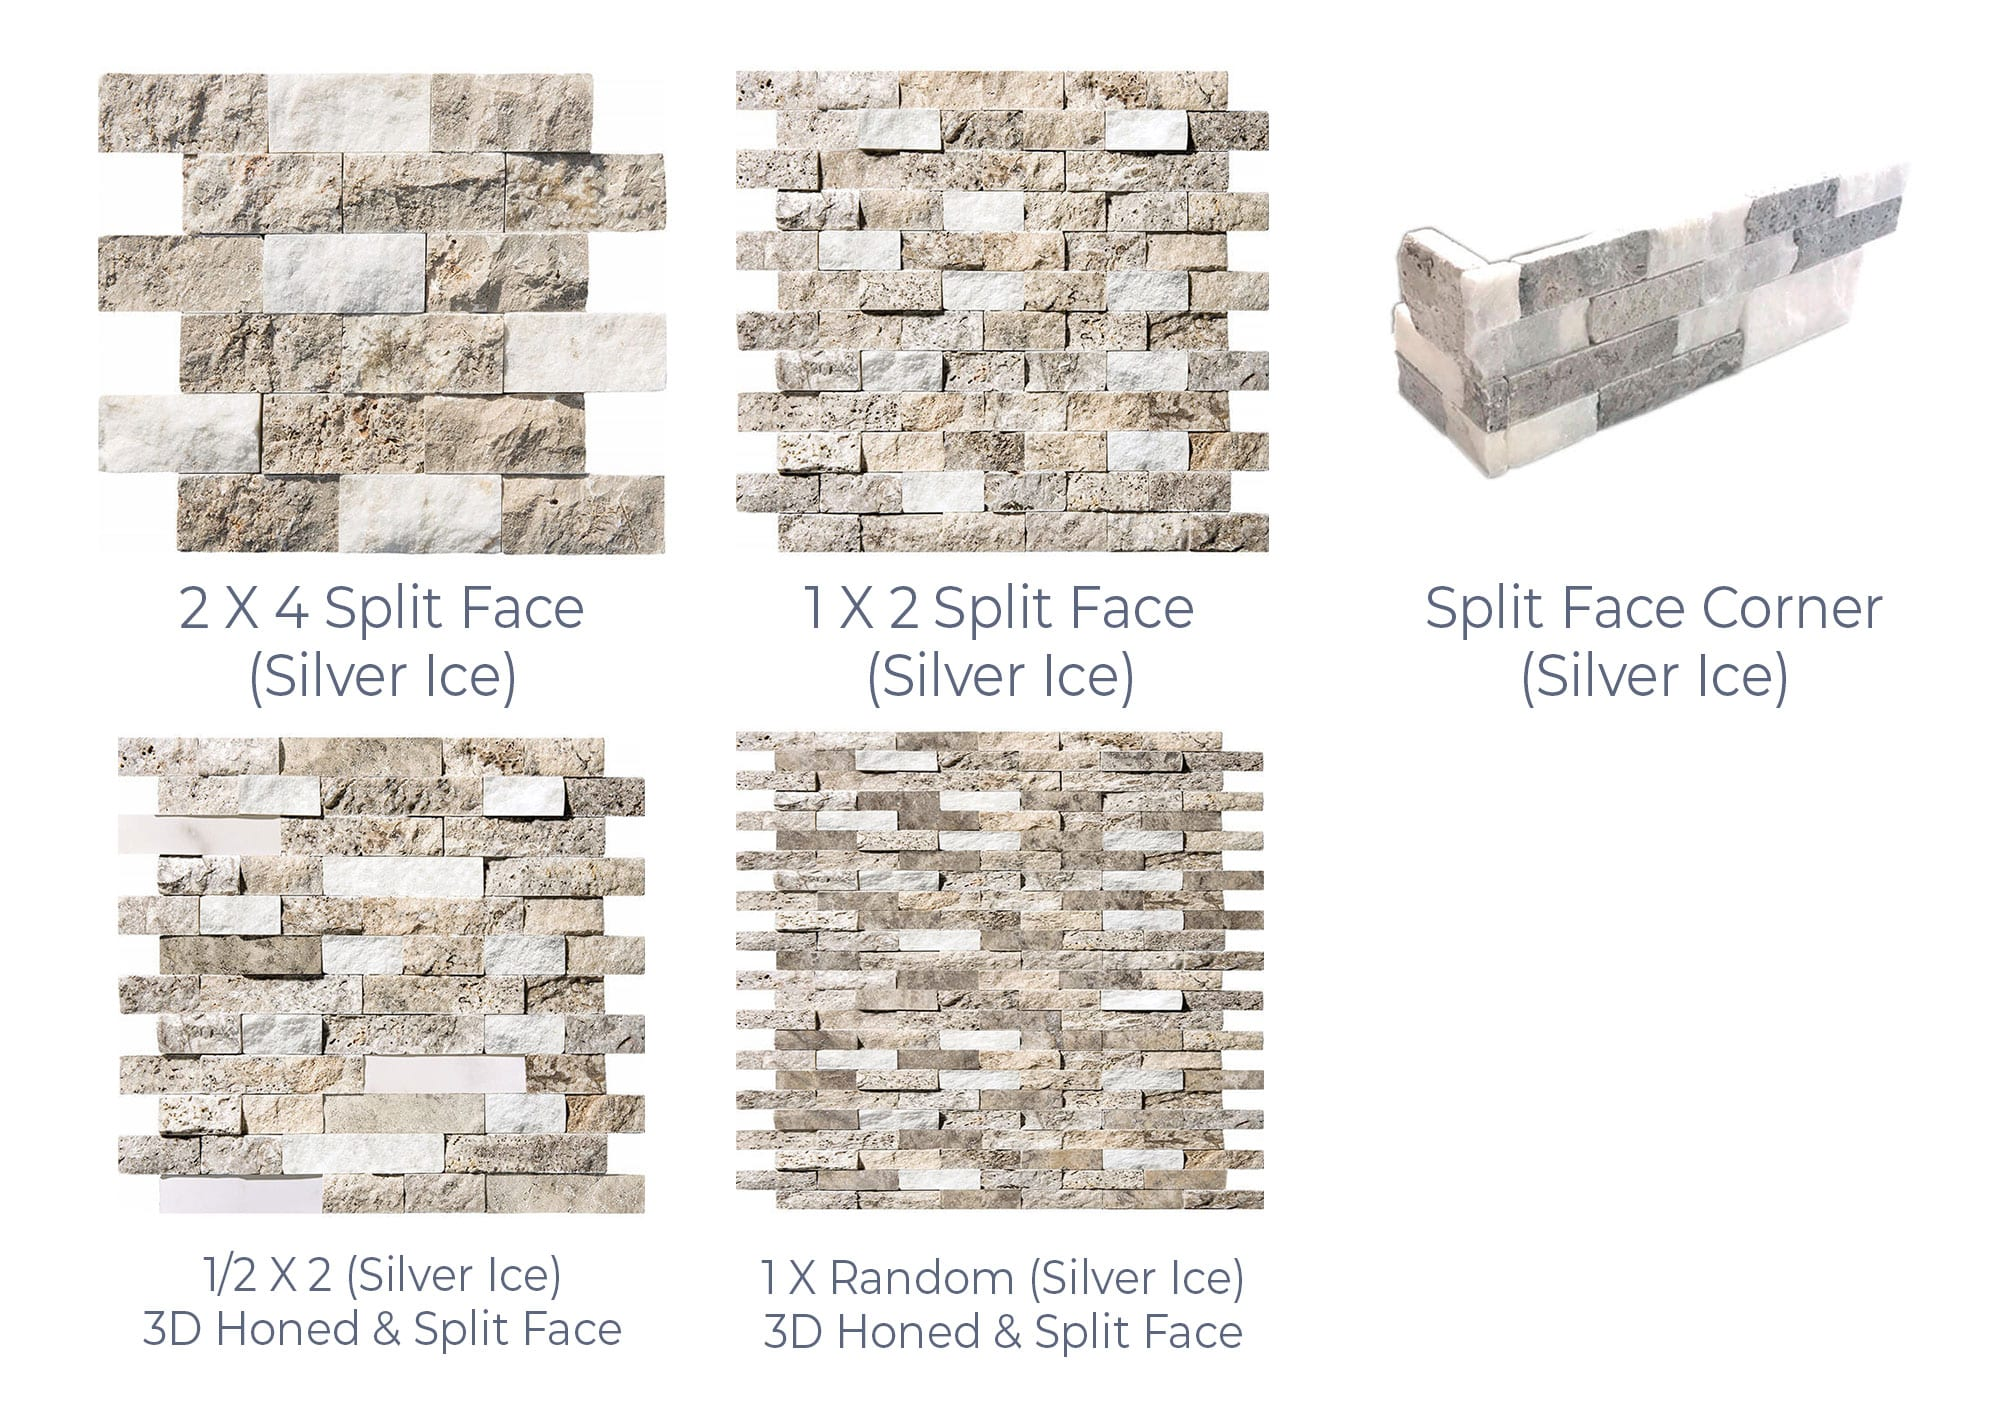 Stoneline-Group-Silver-Ice-Travertine-Marble-Collection-Marble-Veneer-3D-Honed-Split-Face-Random-Pictures